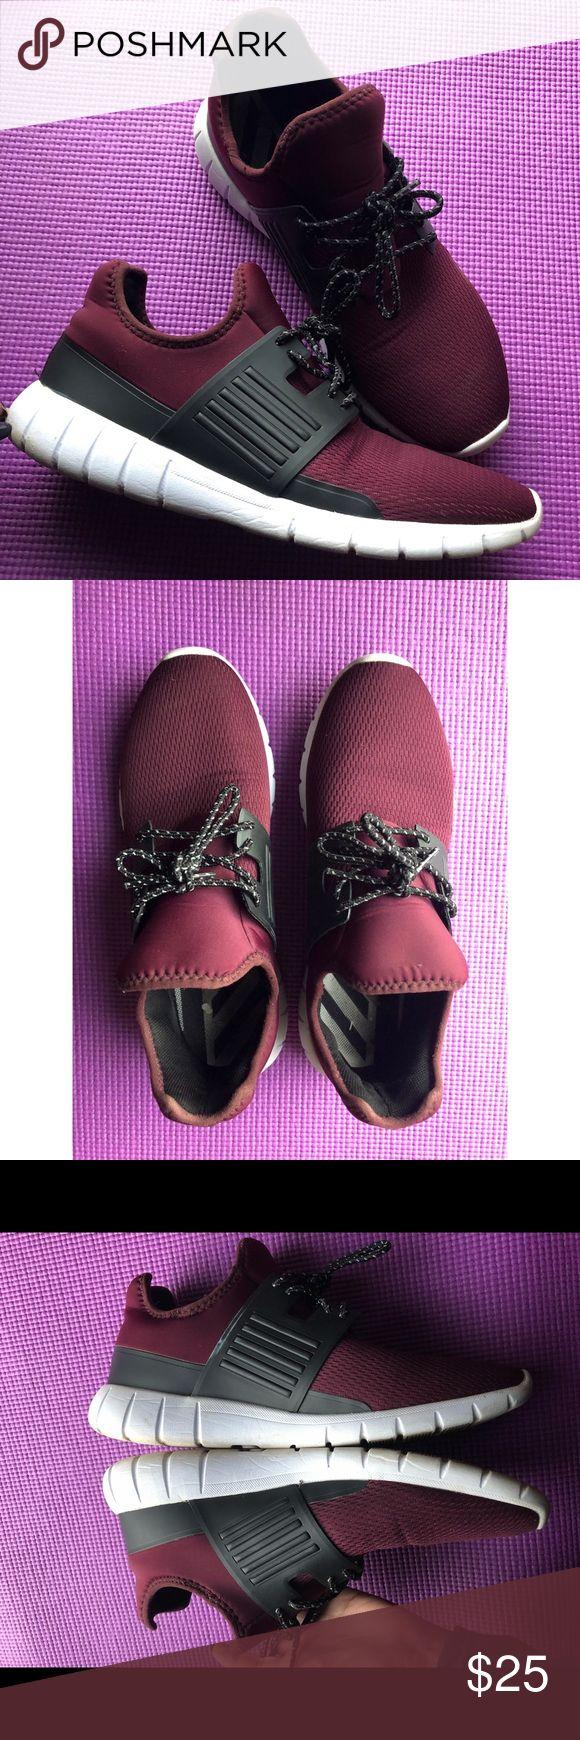 Burgundy Athletic shoes 👟 | Athletic shoes, H&m shoes, Shoes